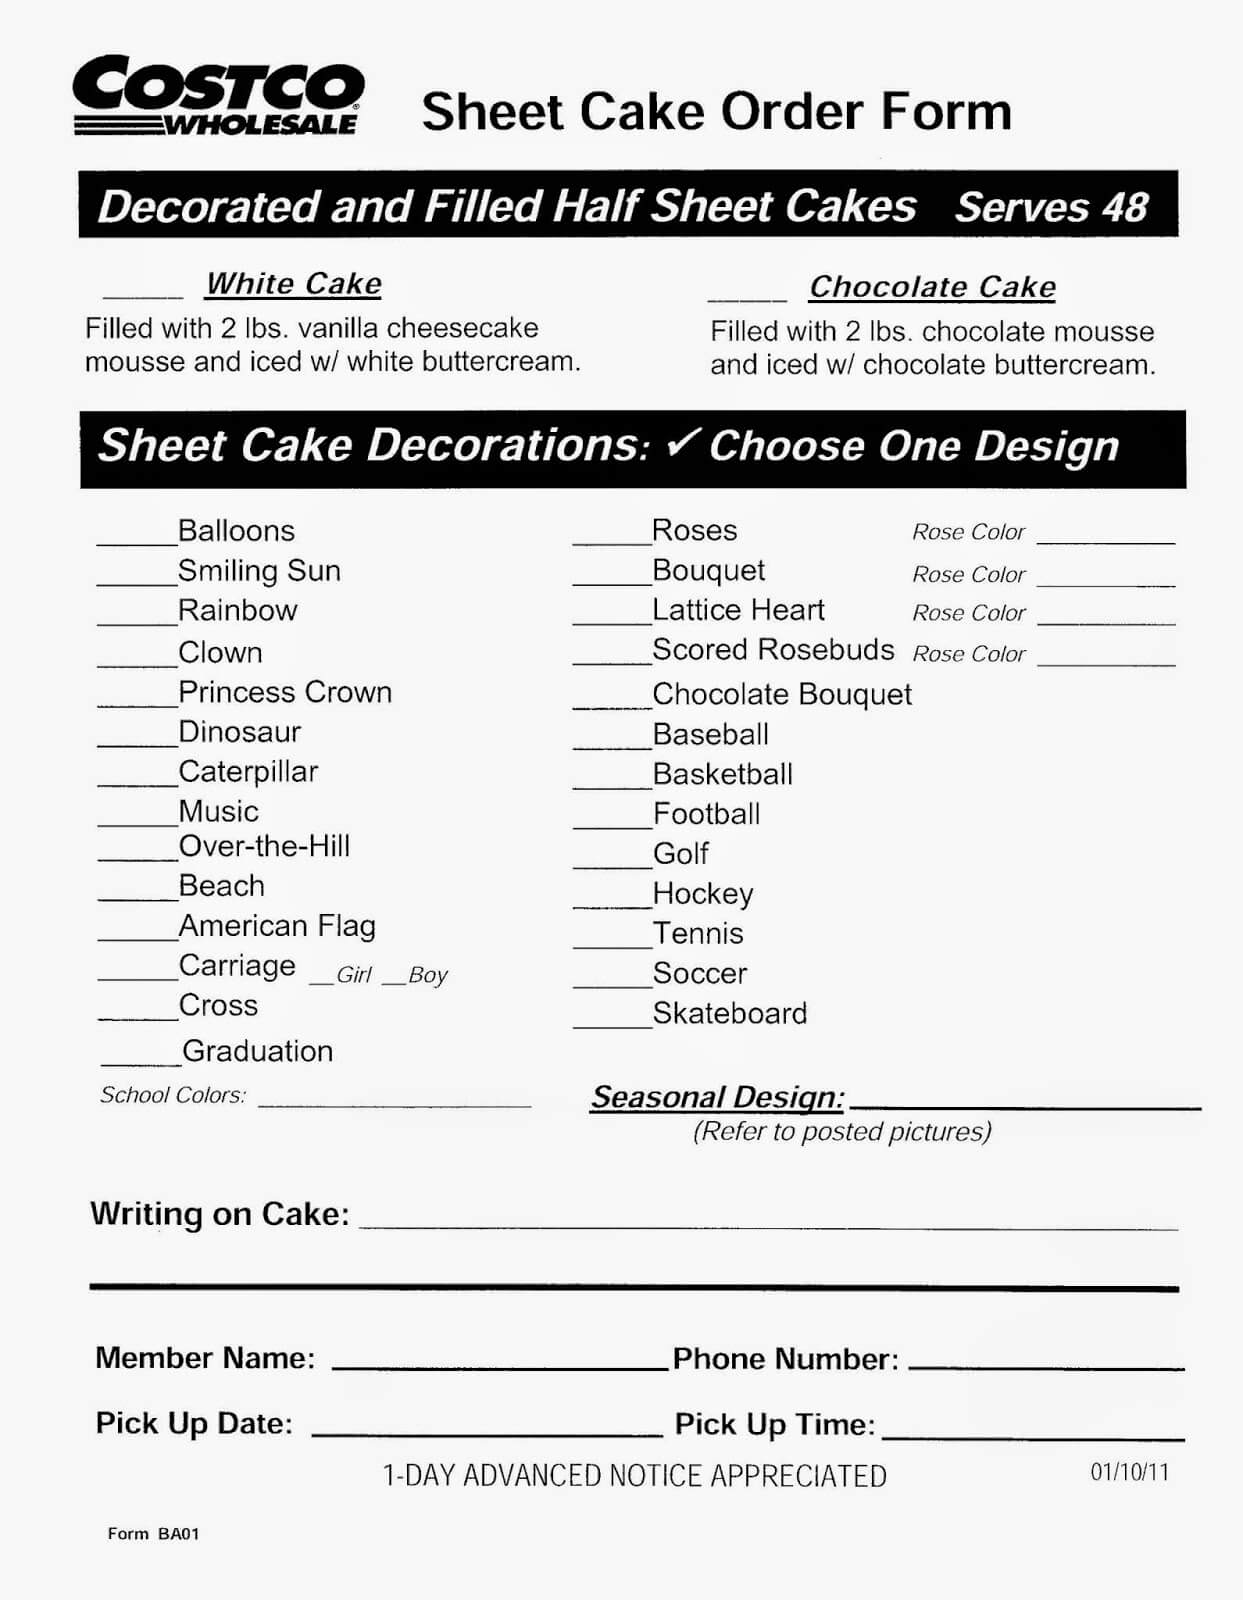 Costco Sheet Cake Order Form